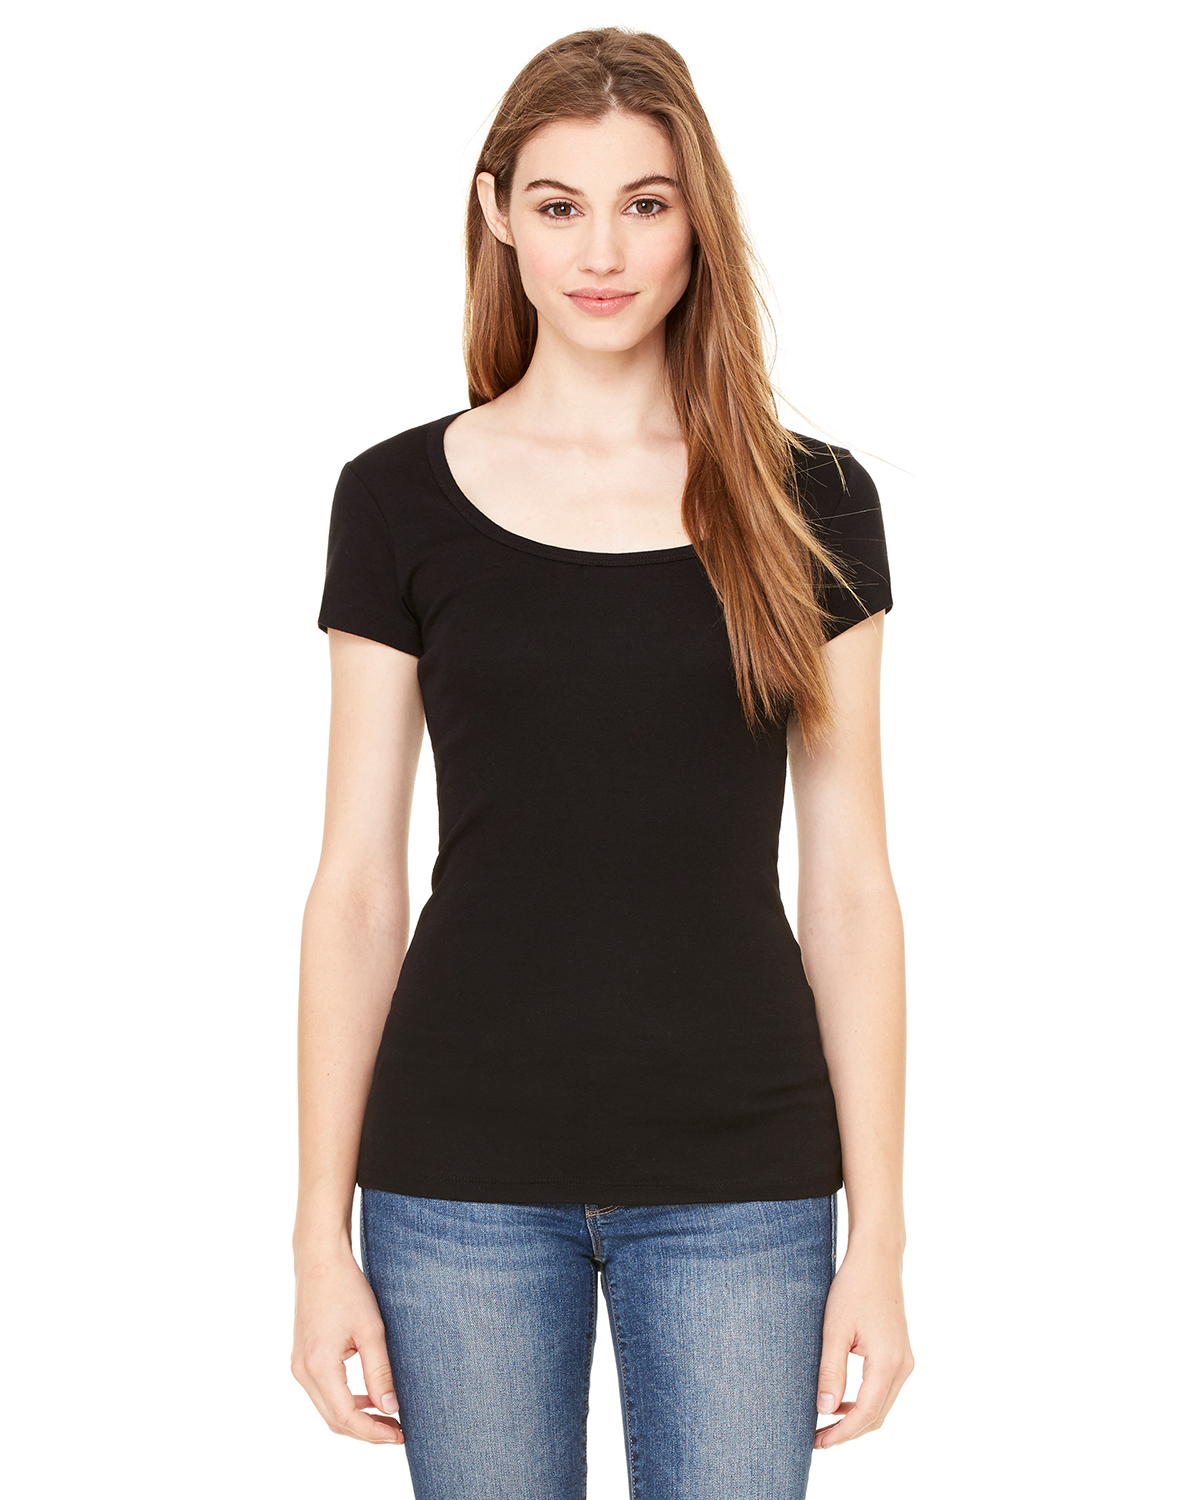 Bella B8703  Women's Sheer Rib Scoop Neck T